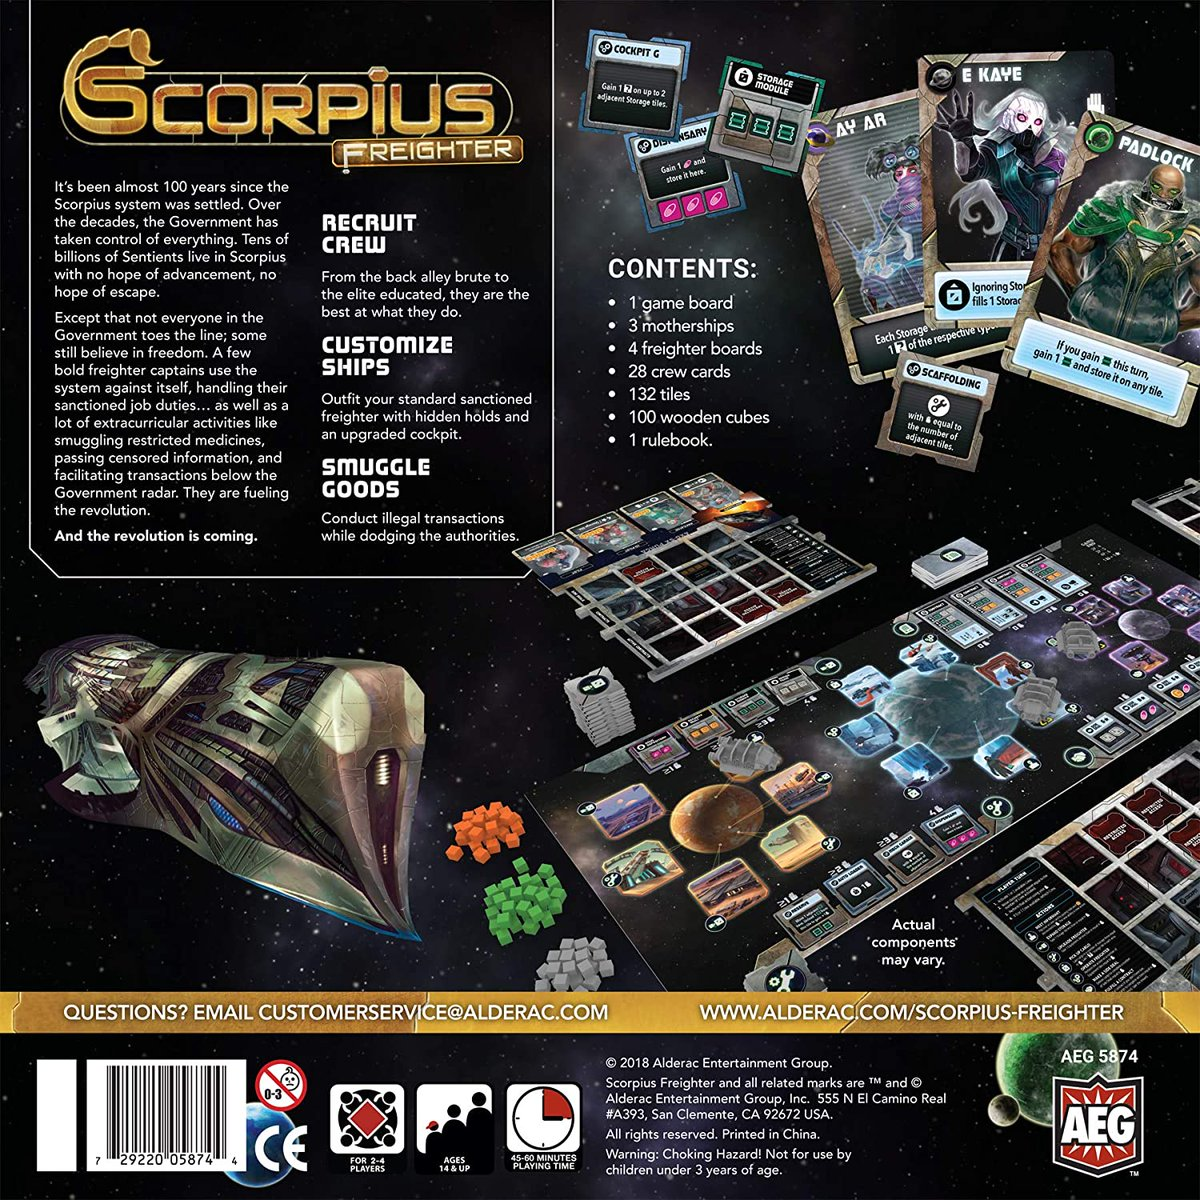 Scorpius Freighter for 58% off.  Under $25.  #ad  TGDrepost